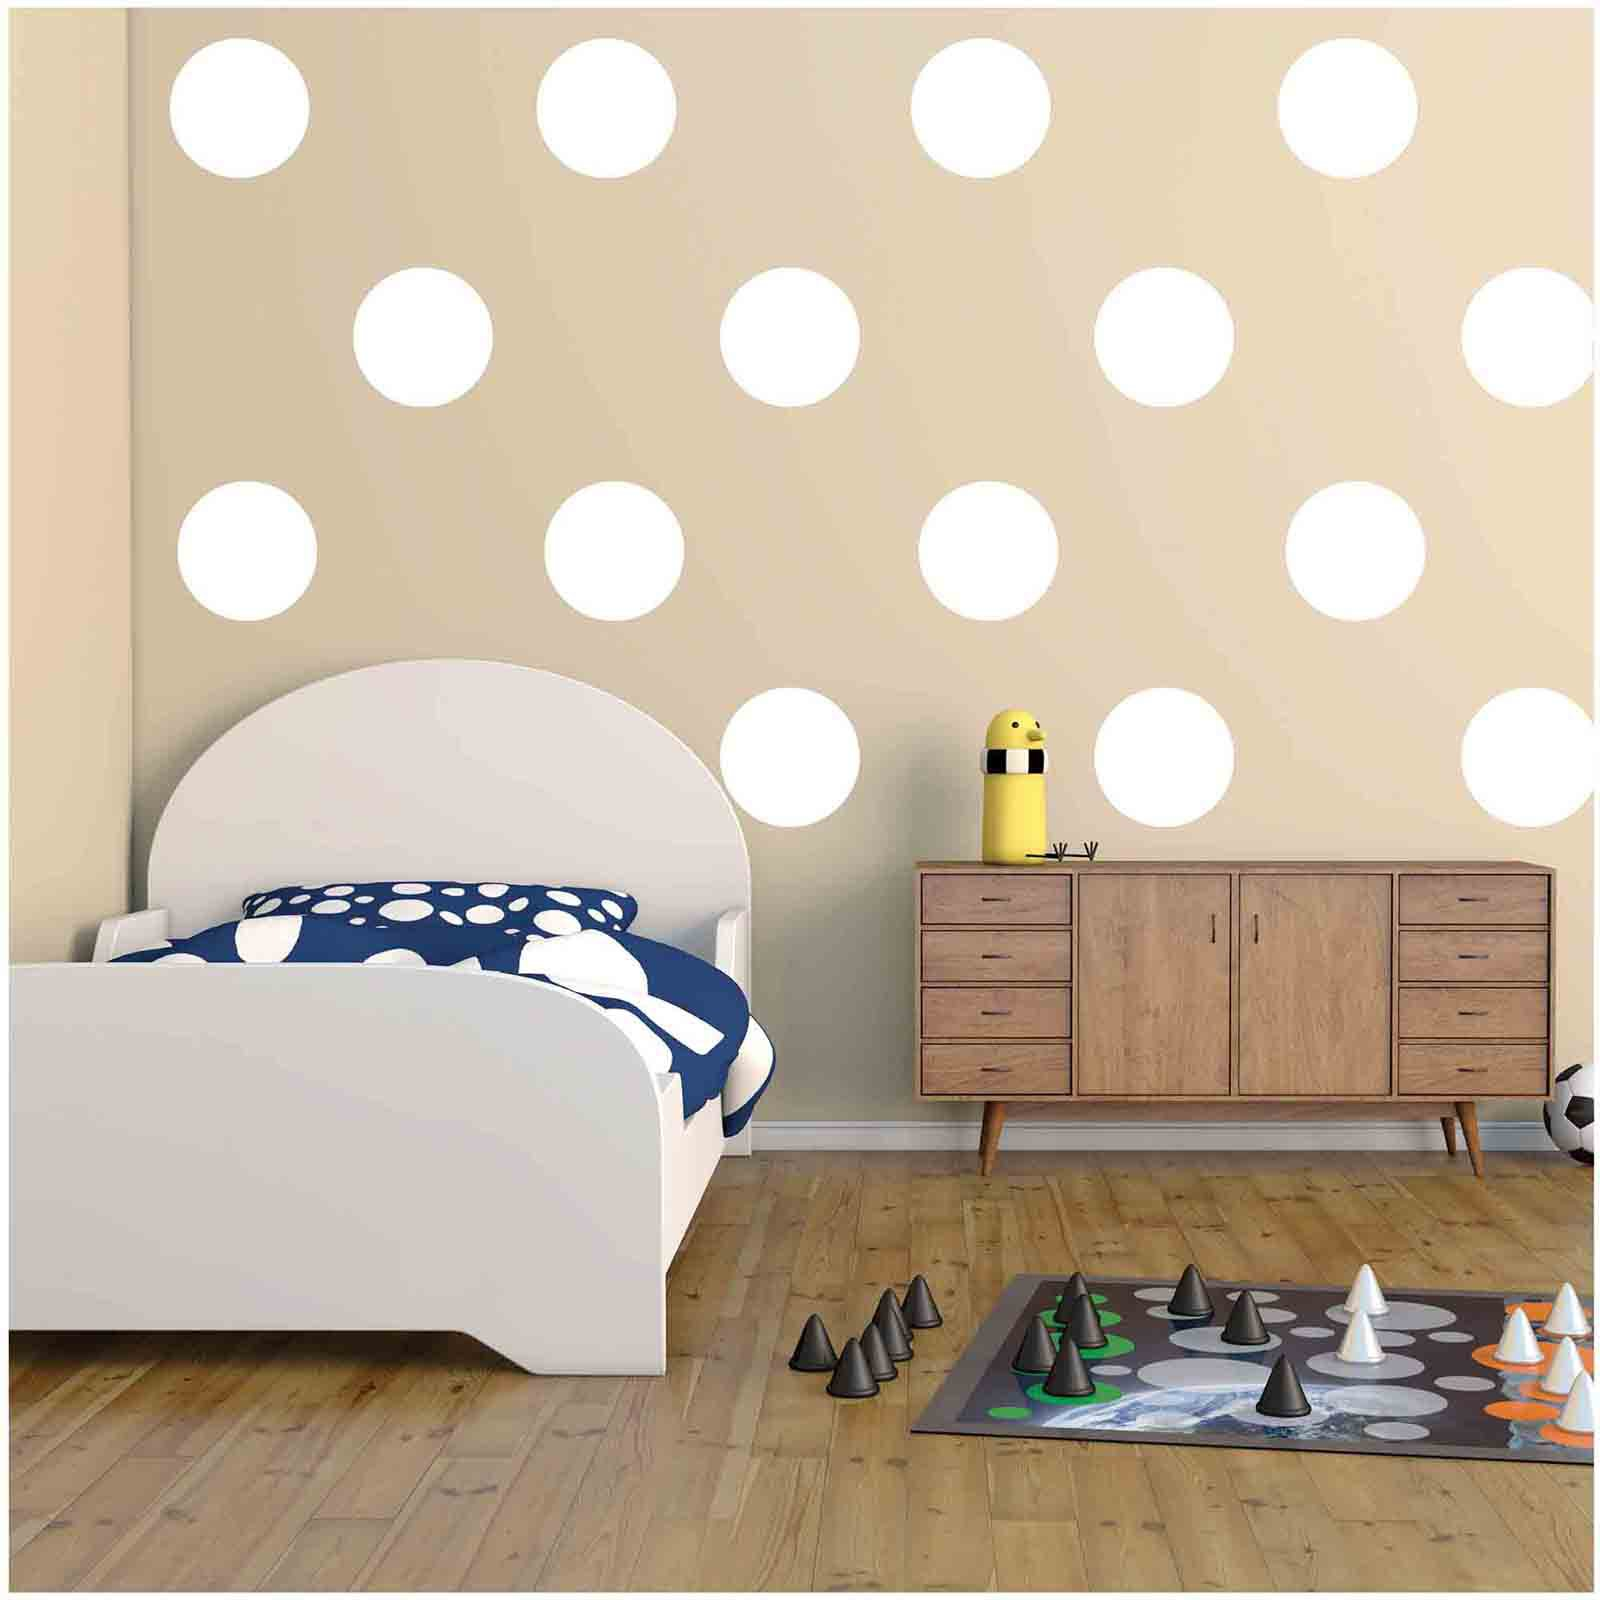 Quest Products 9 inch Polka Dots Wall Decal